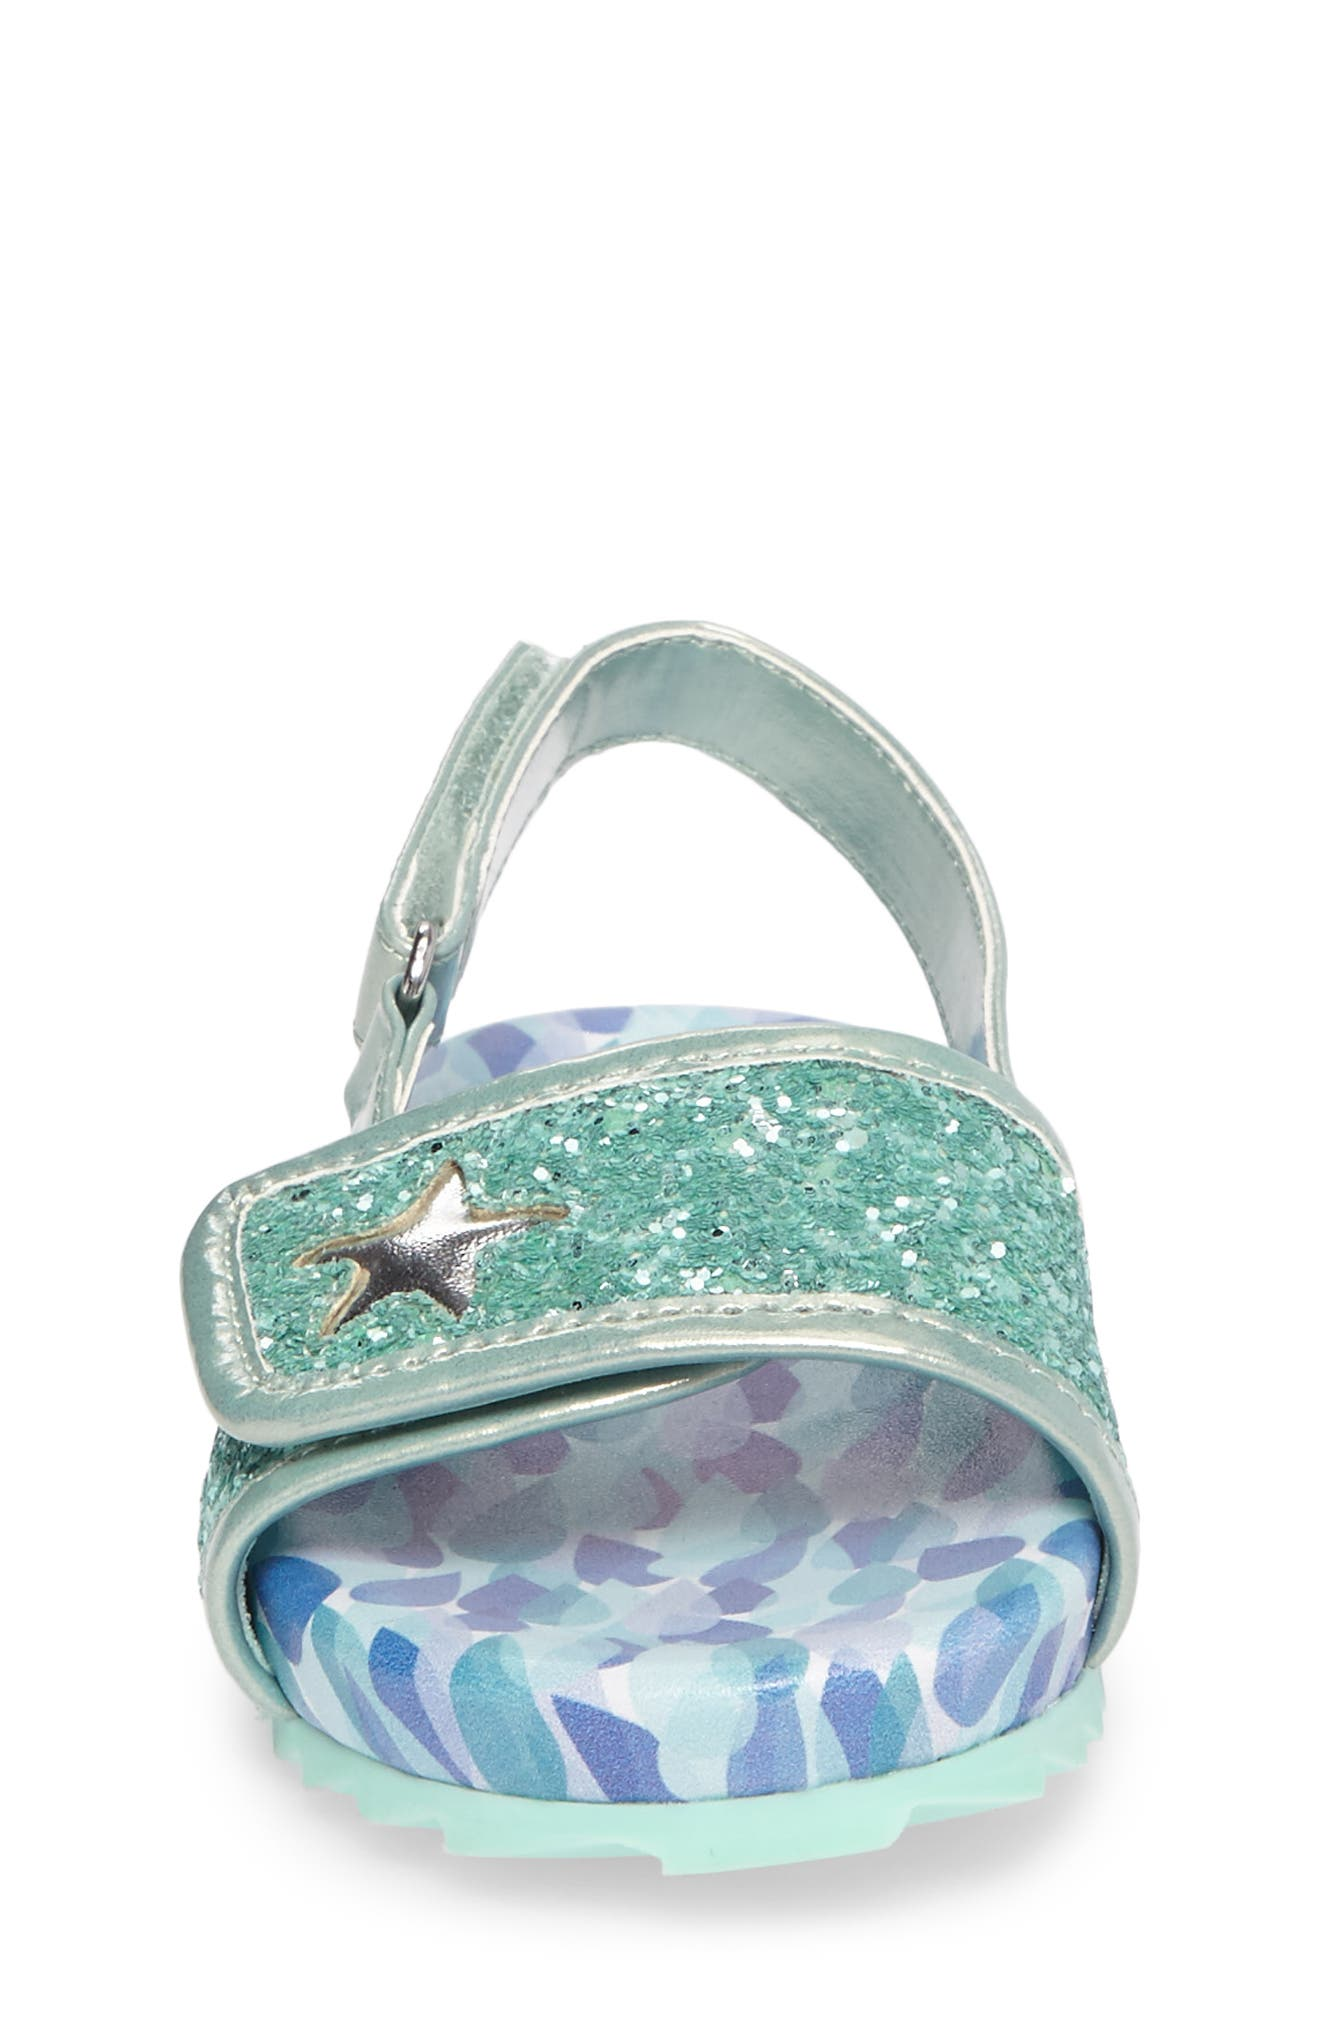 WELLIEWISHERS FROM AMERICAN GIRL,                             Camille Raindrop Strap Sandal,                             Alternate thumbnail 4, color,                             300